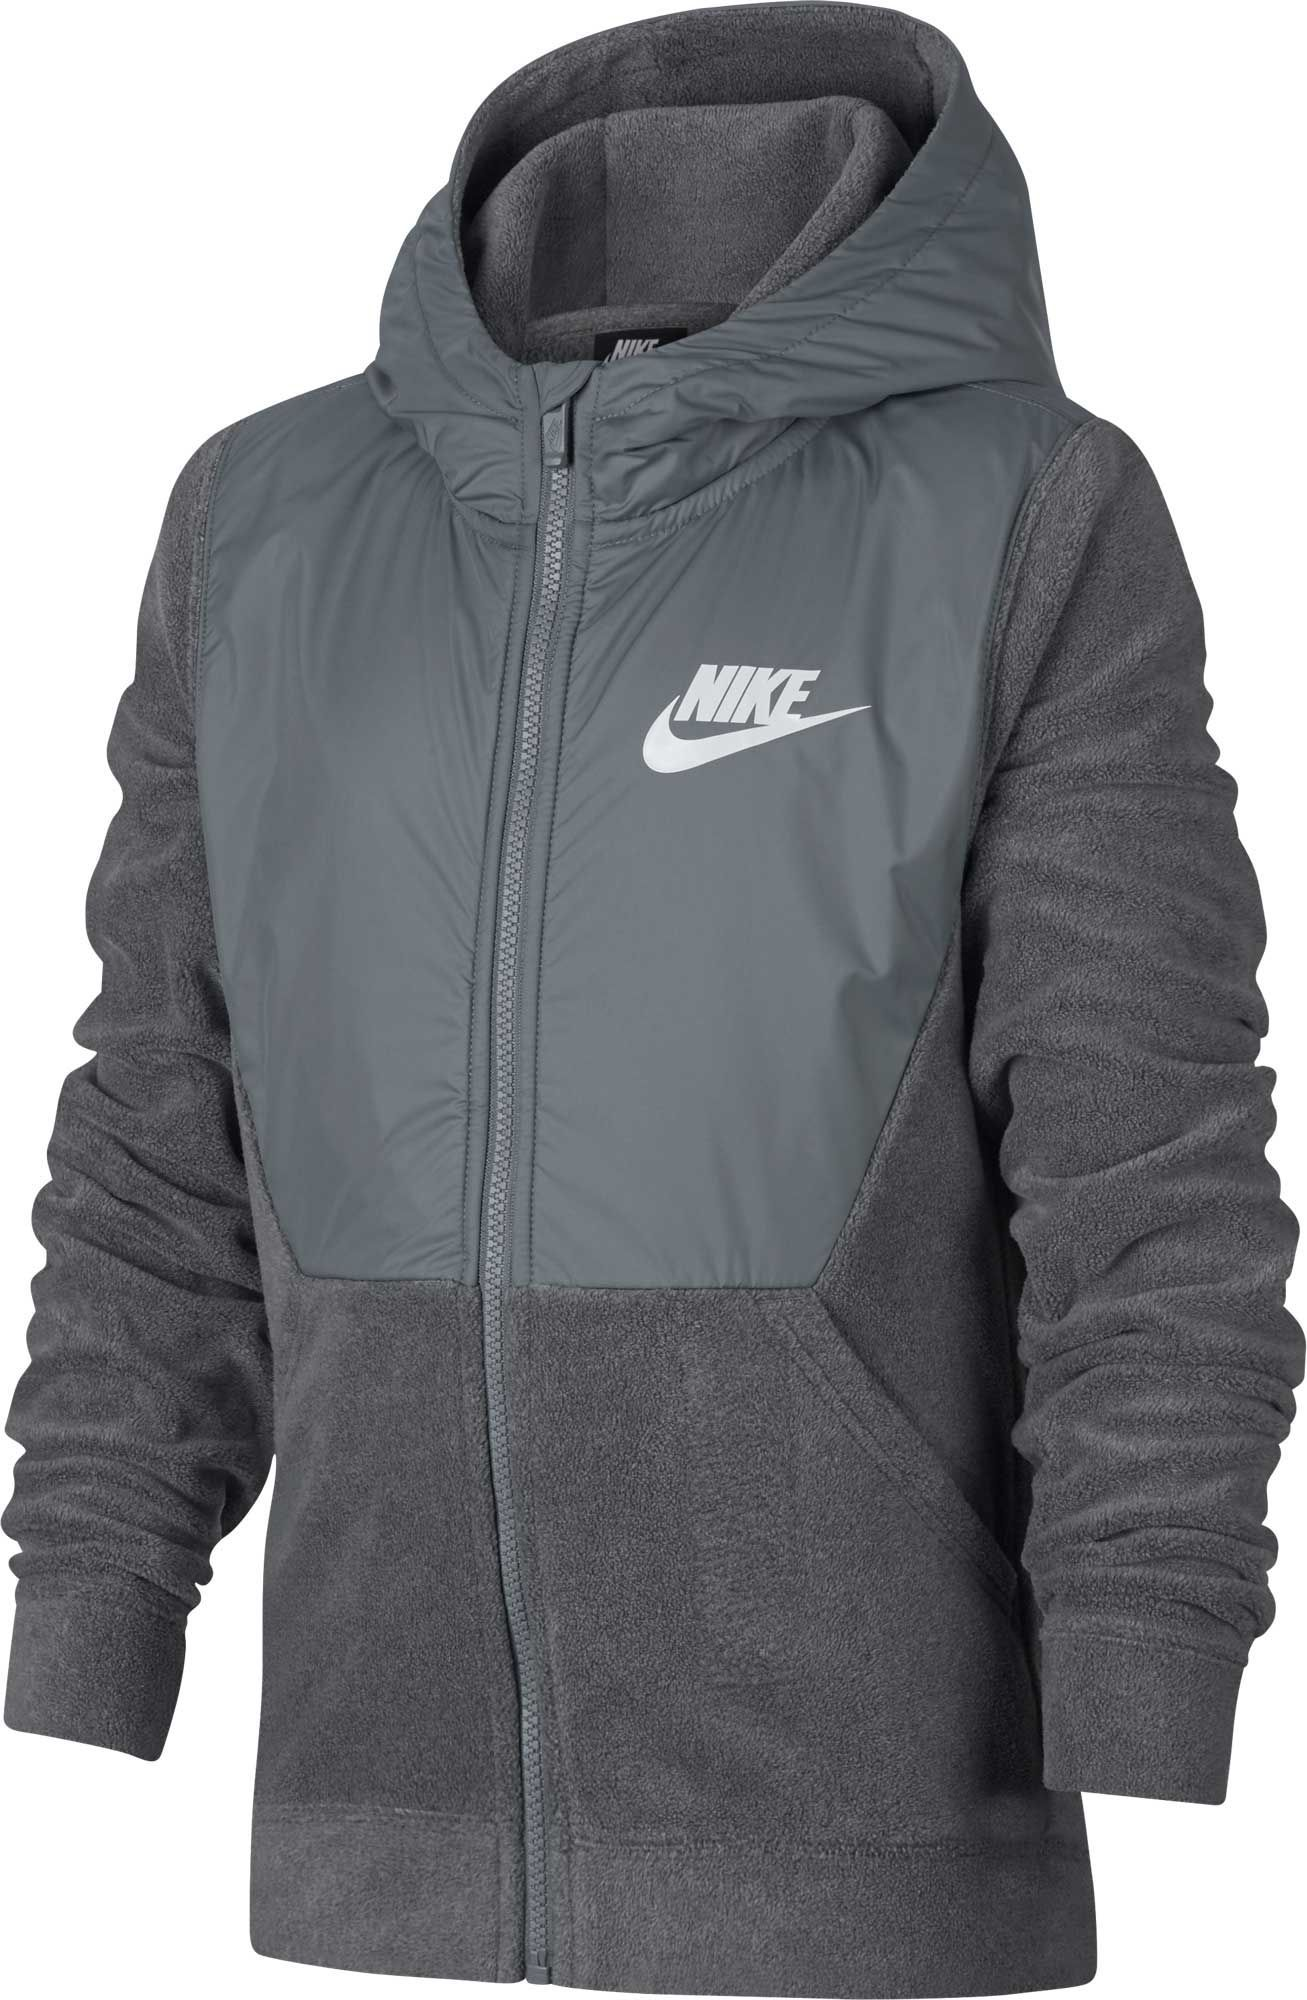 Nike Hoodie Carbon Heather Nike Boys Sportswear Polar Fleece Full Zip Hoodie Size Xl